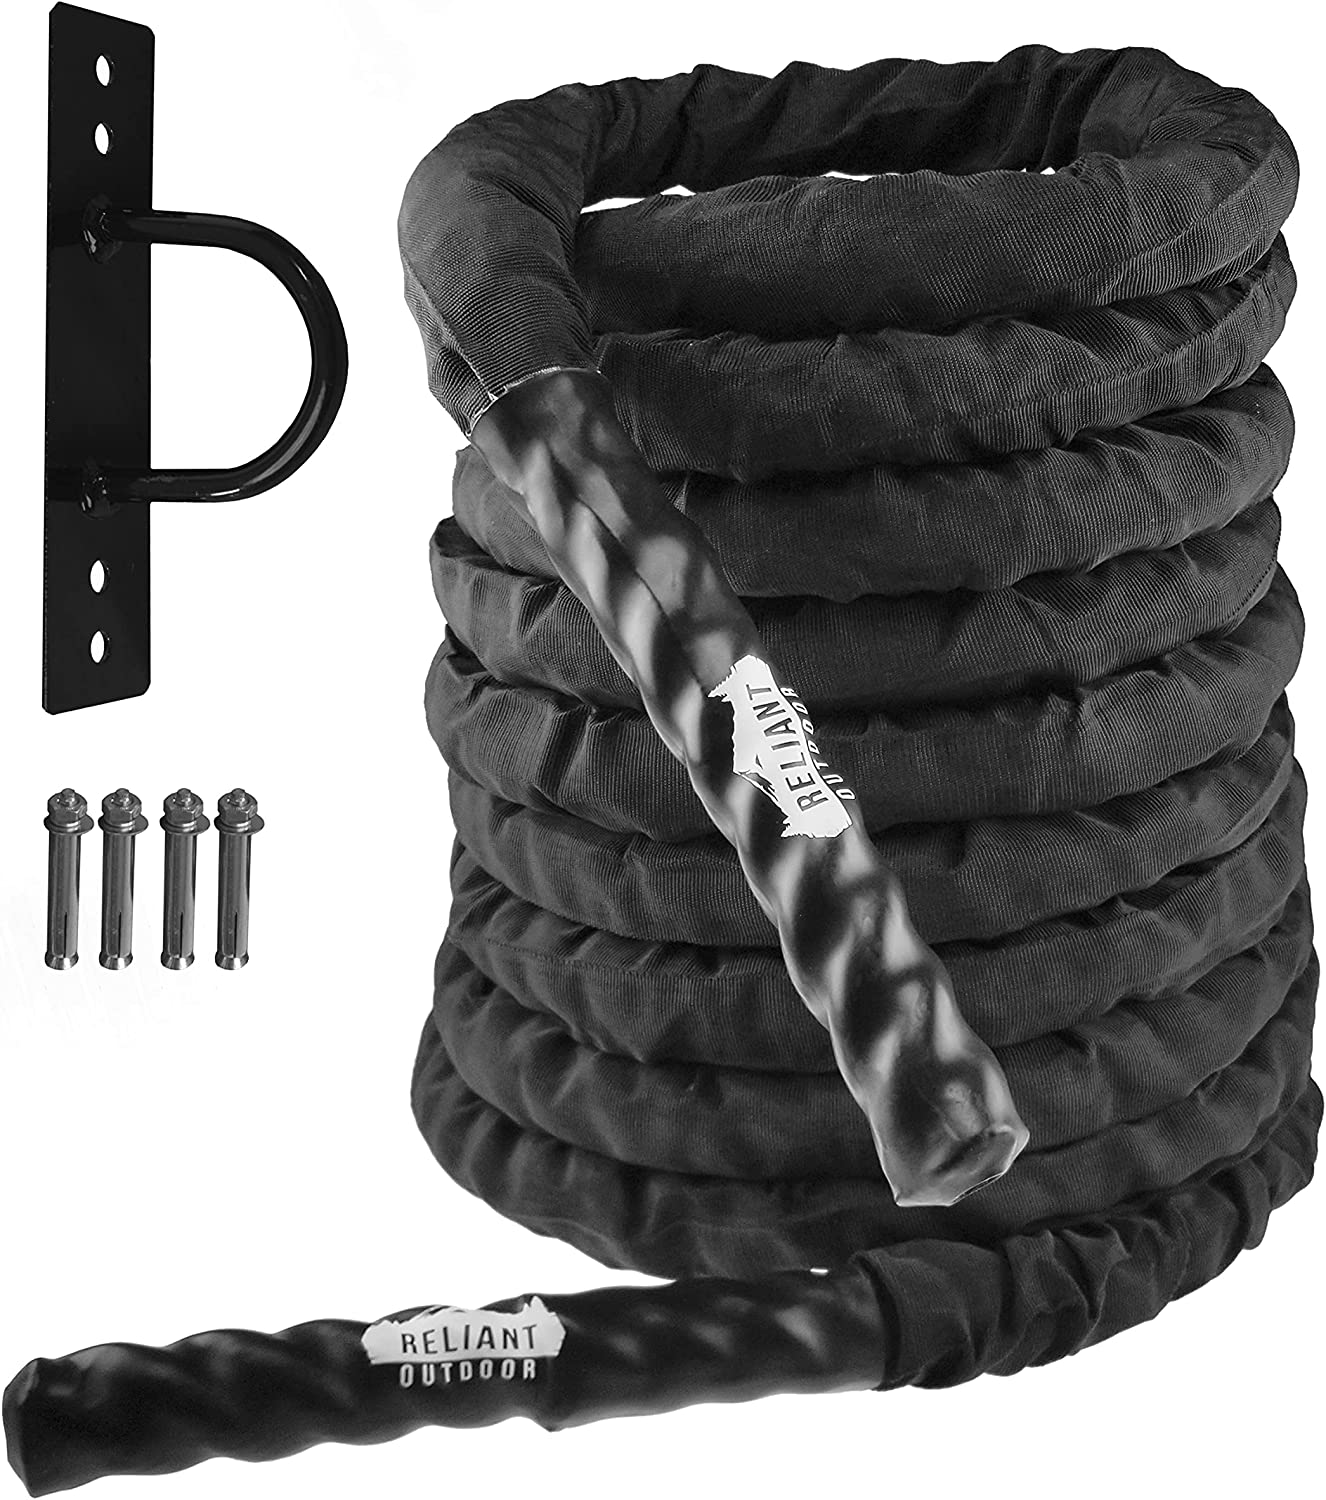 Reliant Outdoor Heavy Duty Battle Rope, Full Body Exercise Equipment for Home Gym, Crossfit Training and Outdoor Workout, 30, 40, 50 Feet Length